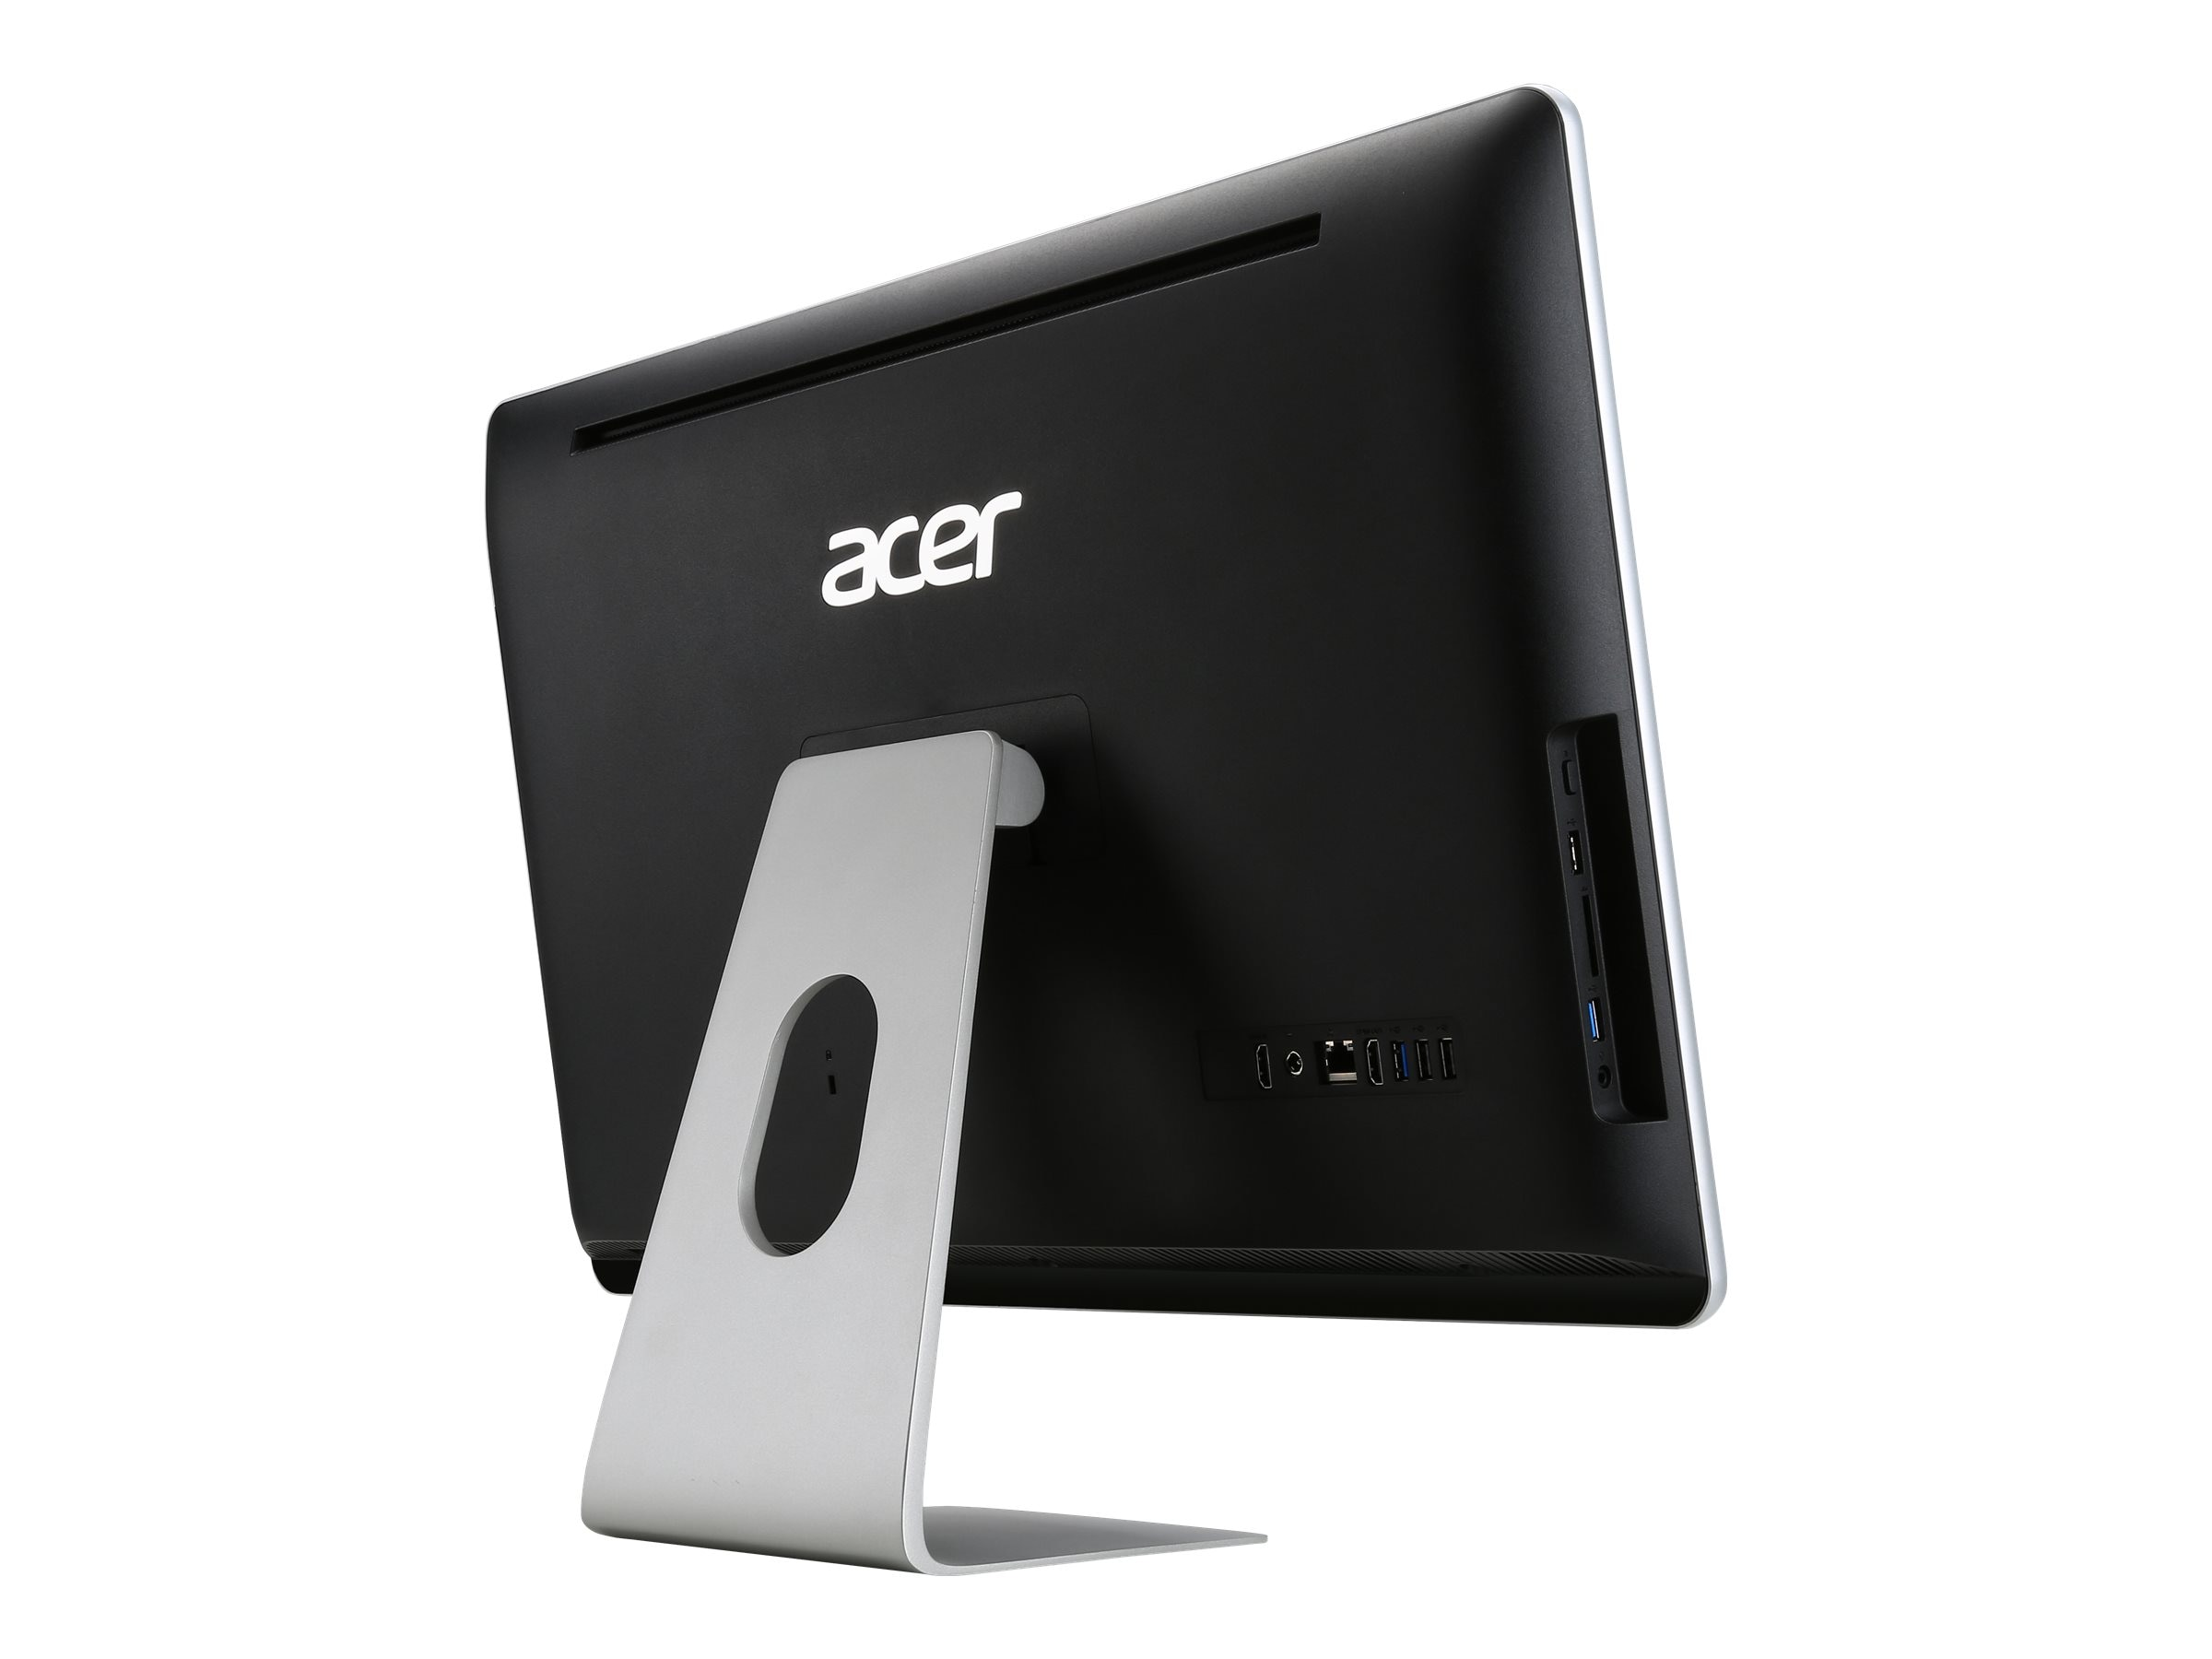 Acer DQ.B02AA.008 Image 4